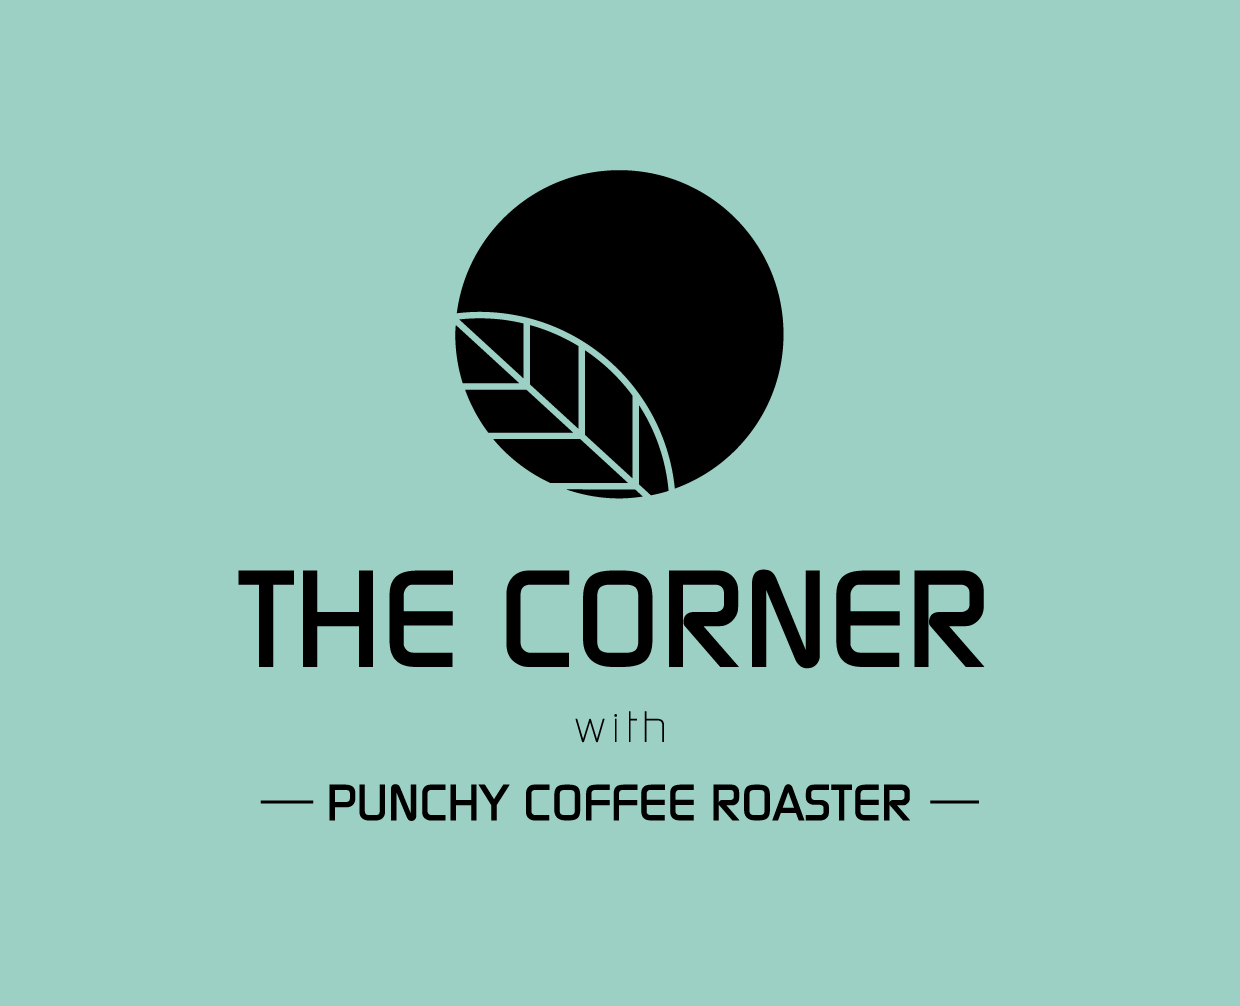 The Corner Coffee